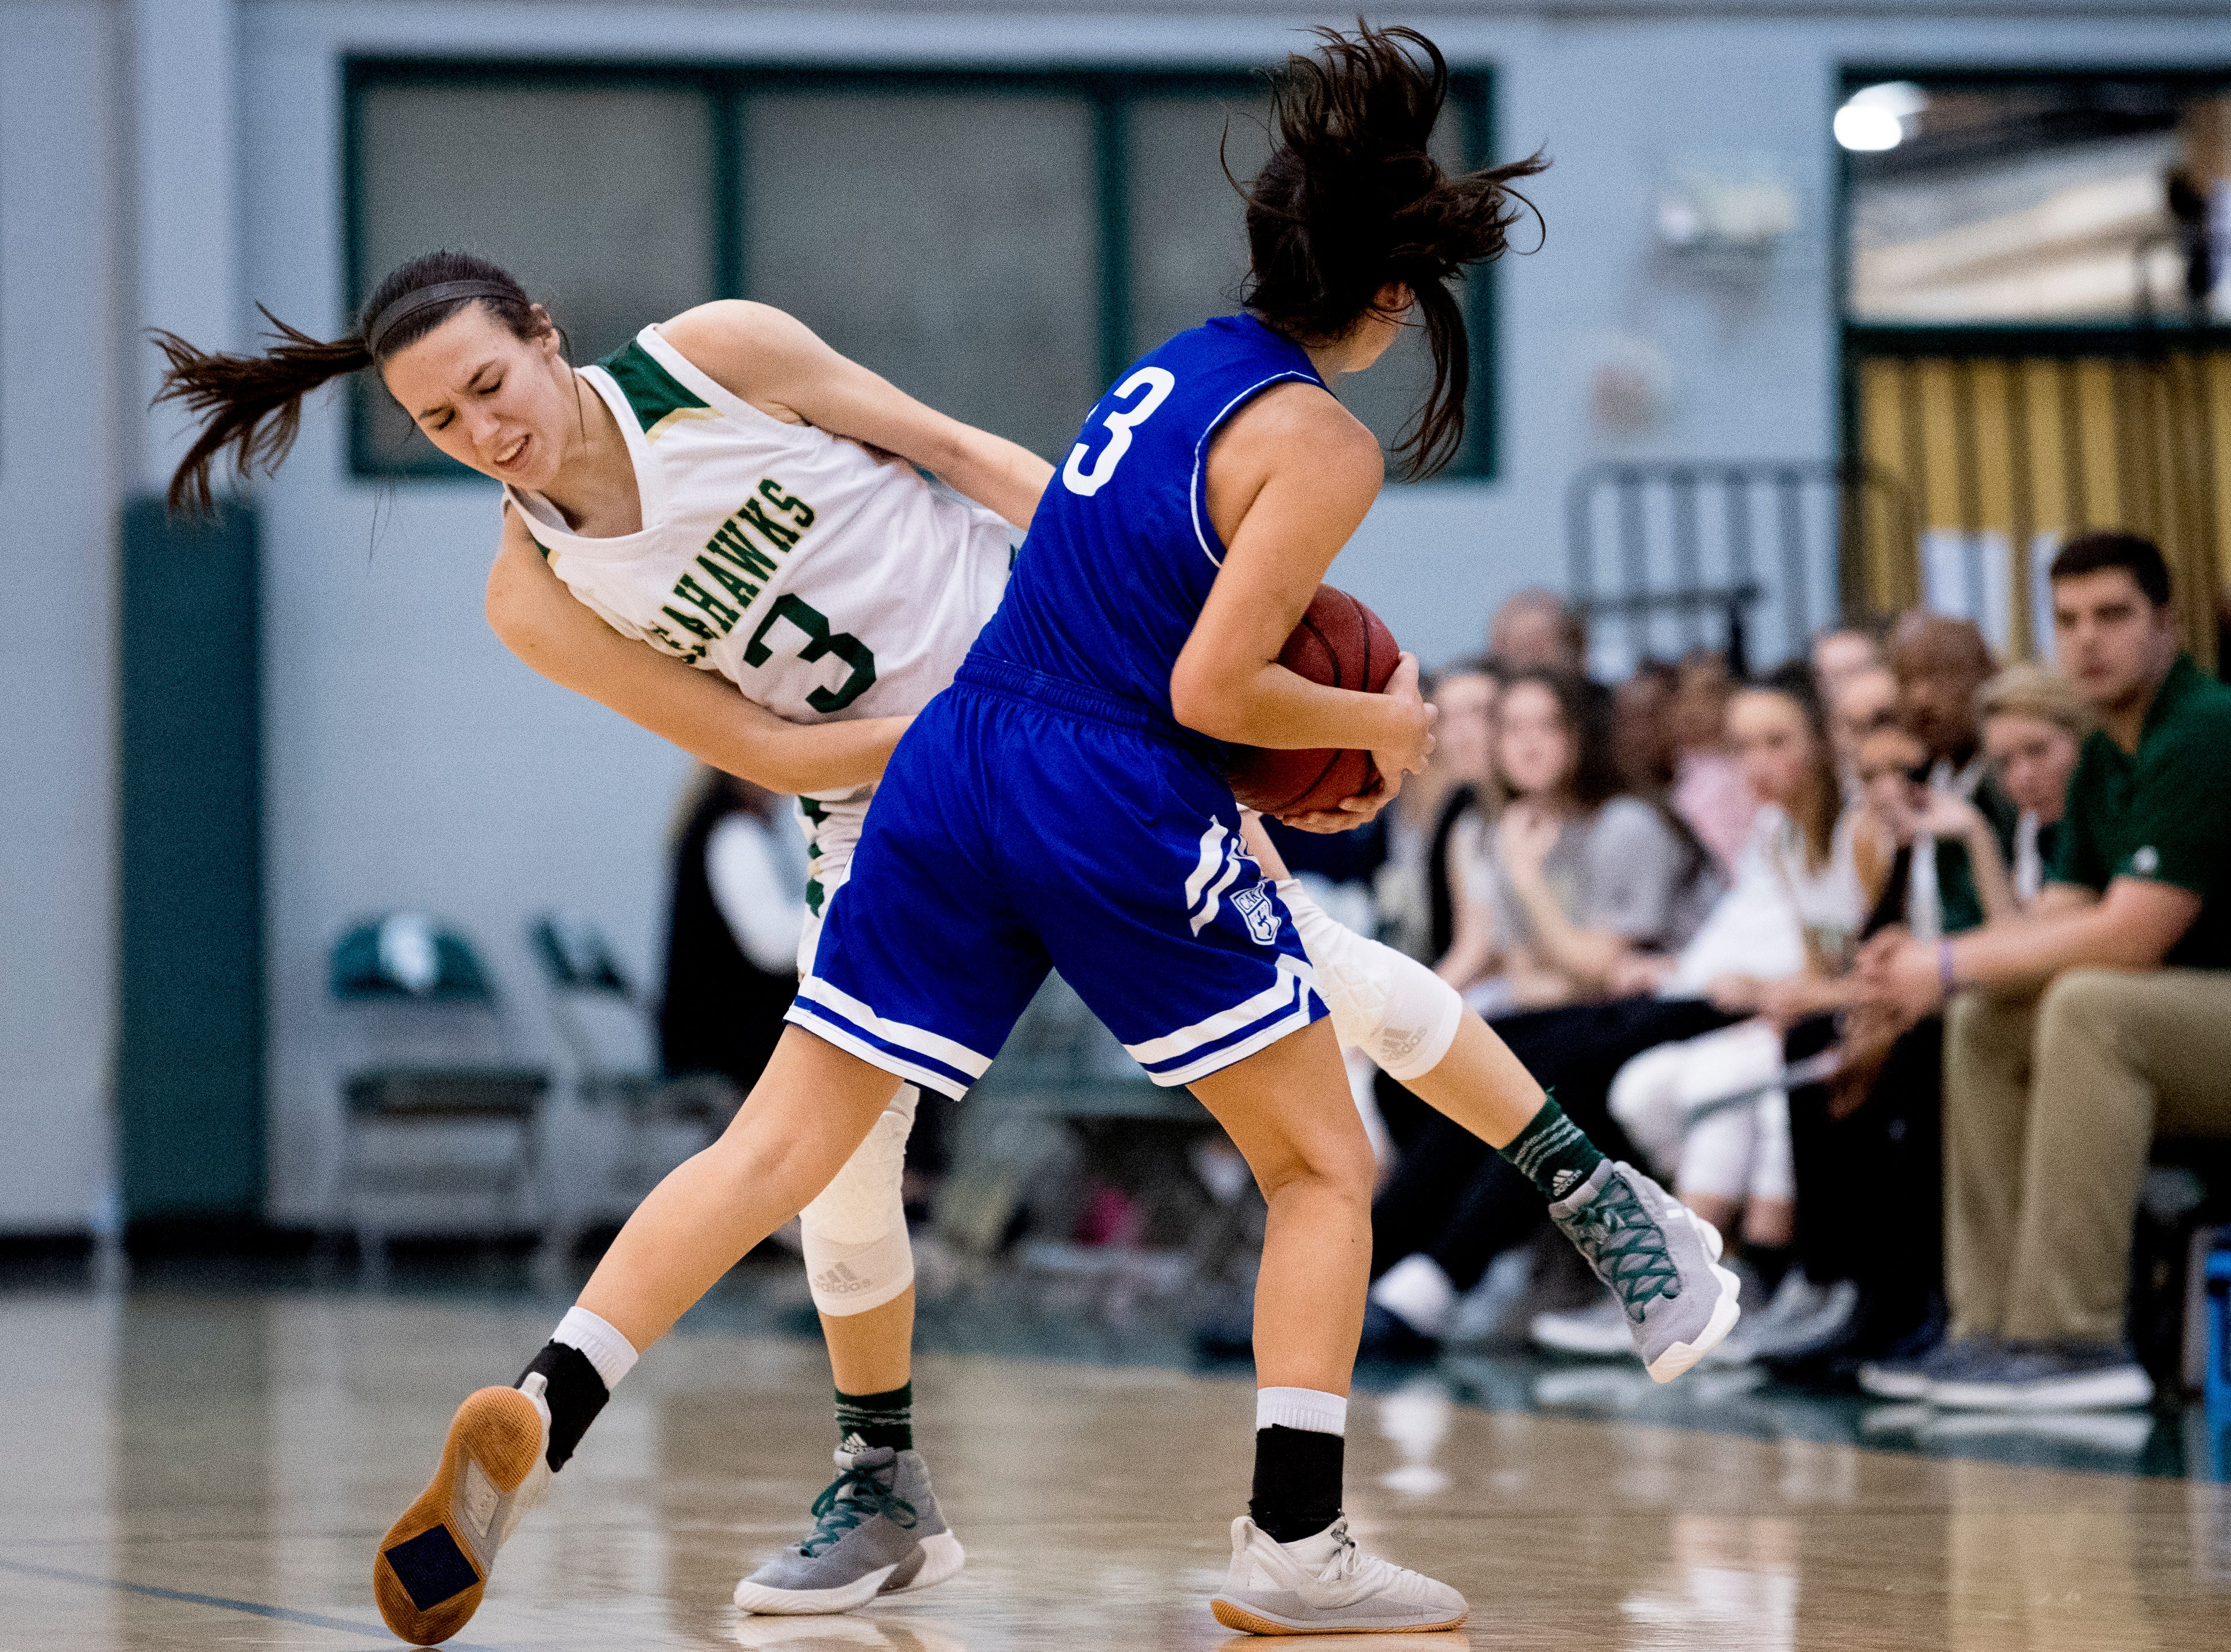 Silverdale's Tessa Gibson (32) and CAK's Ellie Fussell (3) collide during a semifinal game between CAK and Silverdale at Webb School of Knoxville in Knoxville, Tennessee on Friday, February 15, 2019.